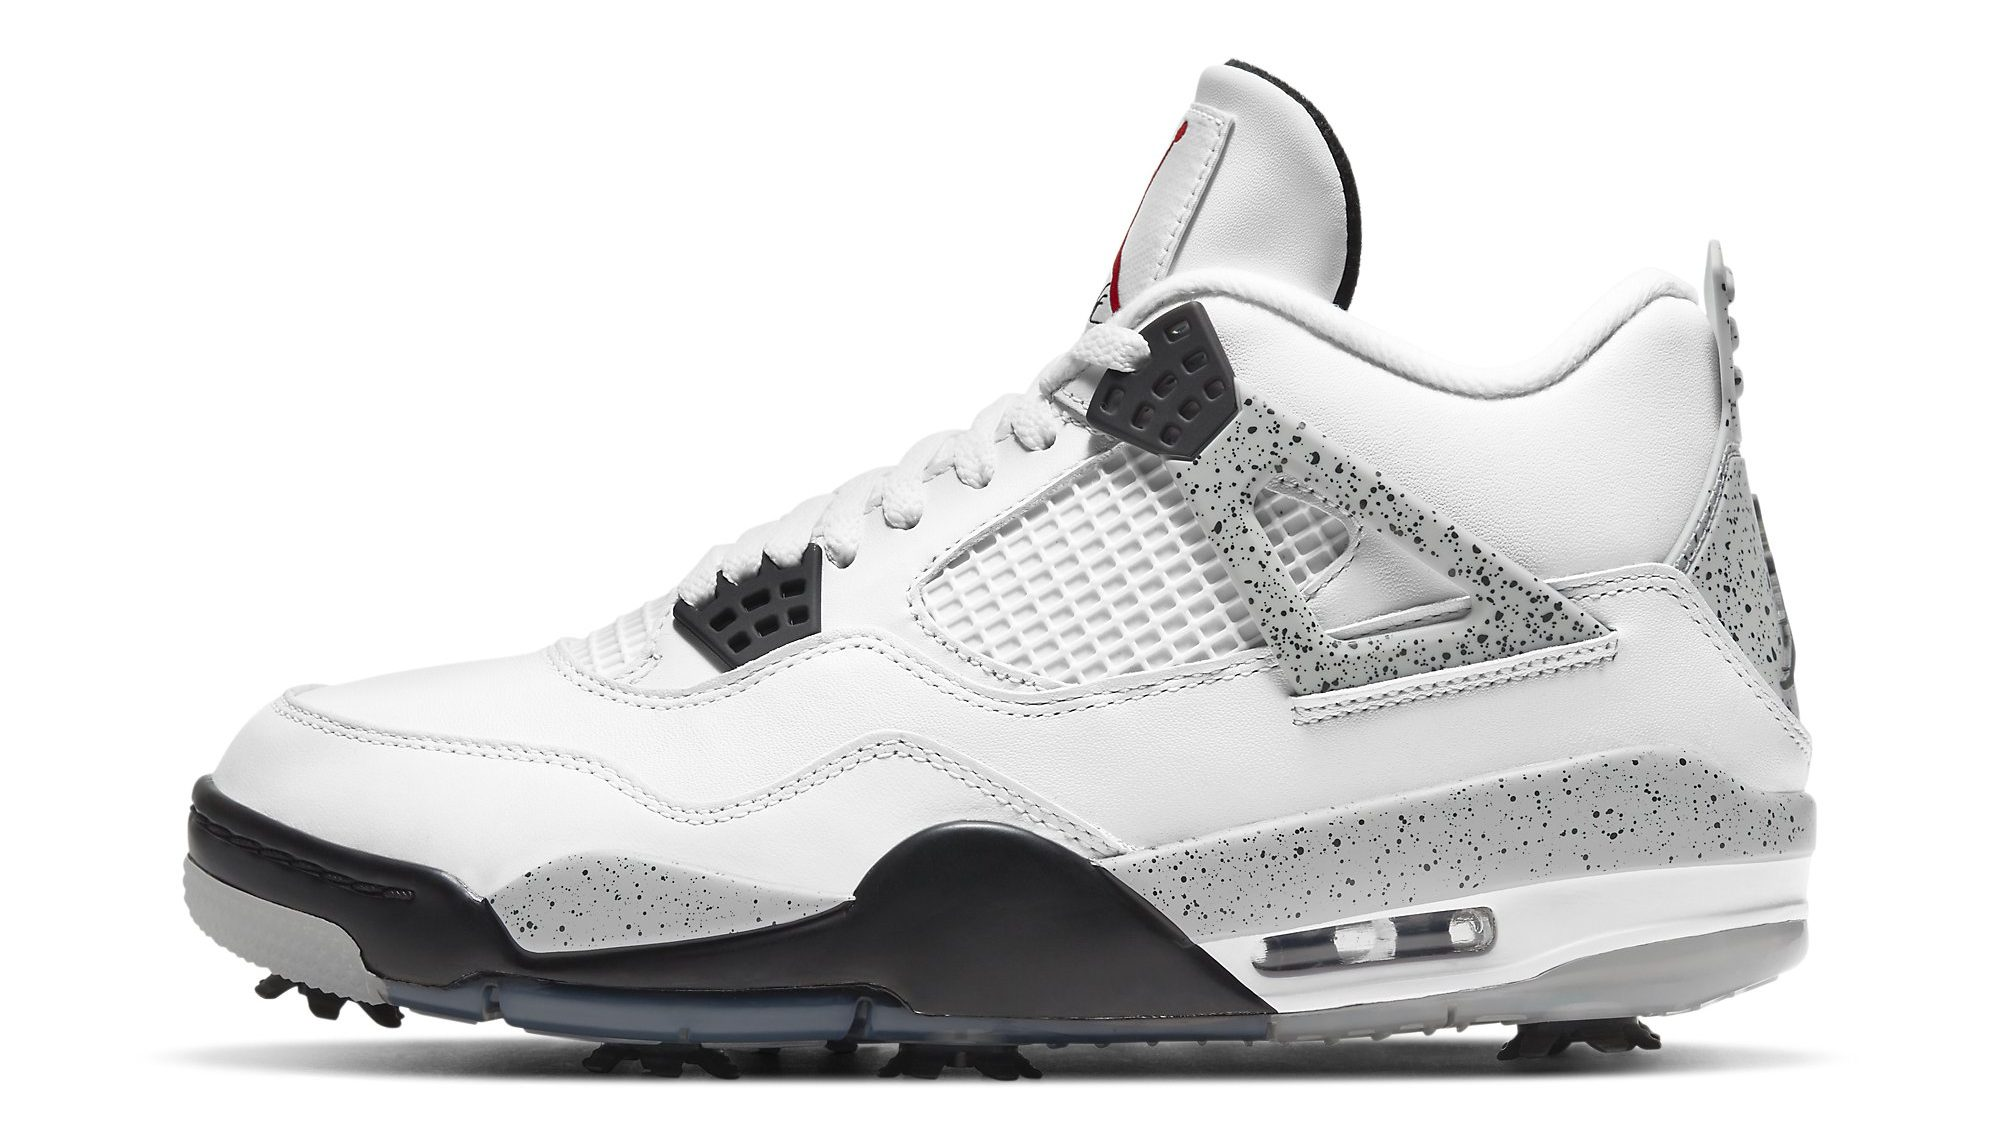 Air Jordan 4 Golf 'White/Cement' Release Info: How to Buy a Pair ...